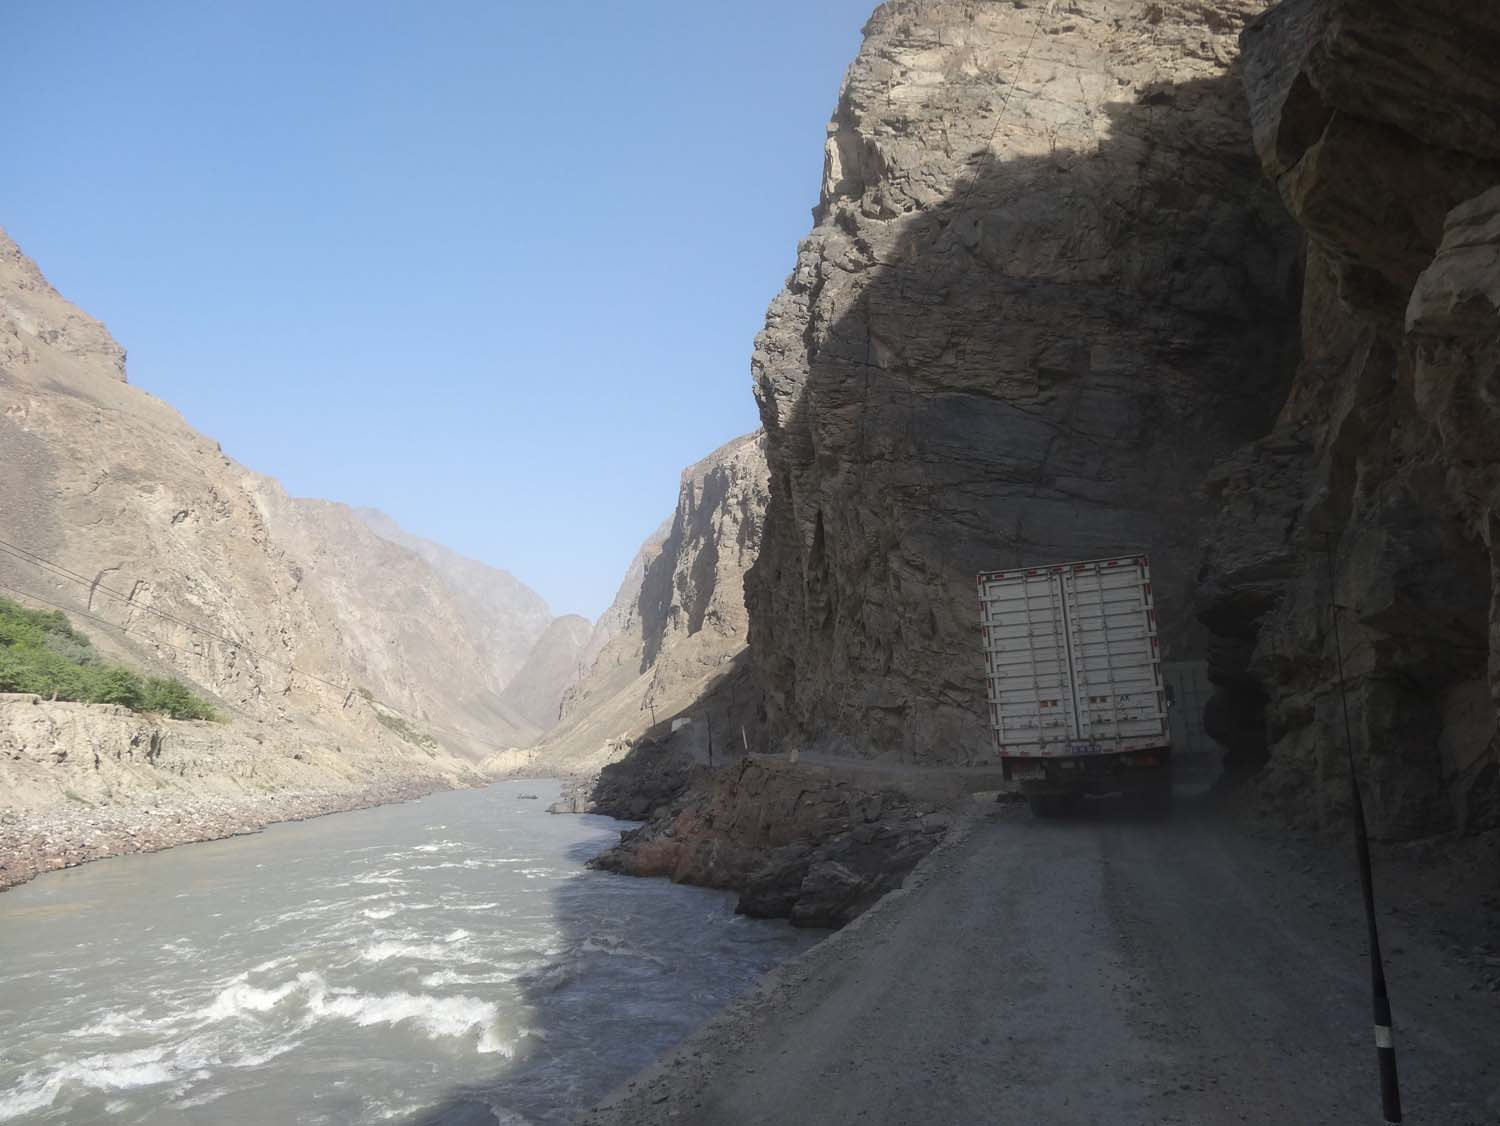 overtaking on the road to Dushanbe was a bit of a challenge